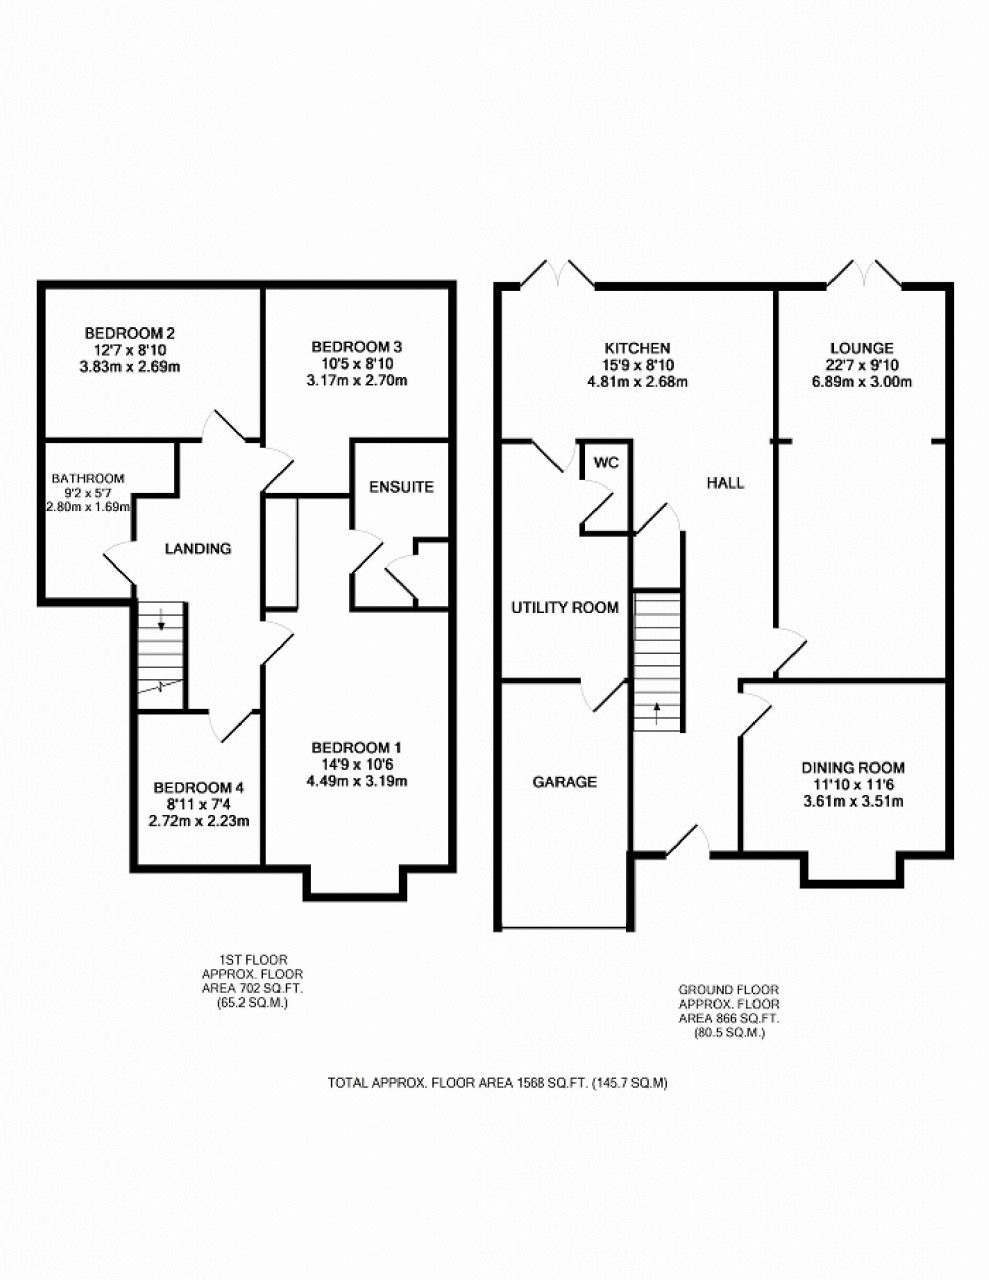 Simple 7 Bedroom House Plans Fresh 21 7 Bedroom House Plans – Designing Your Personal Custom